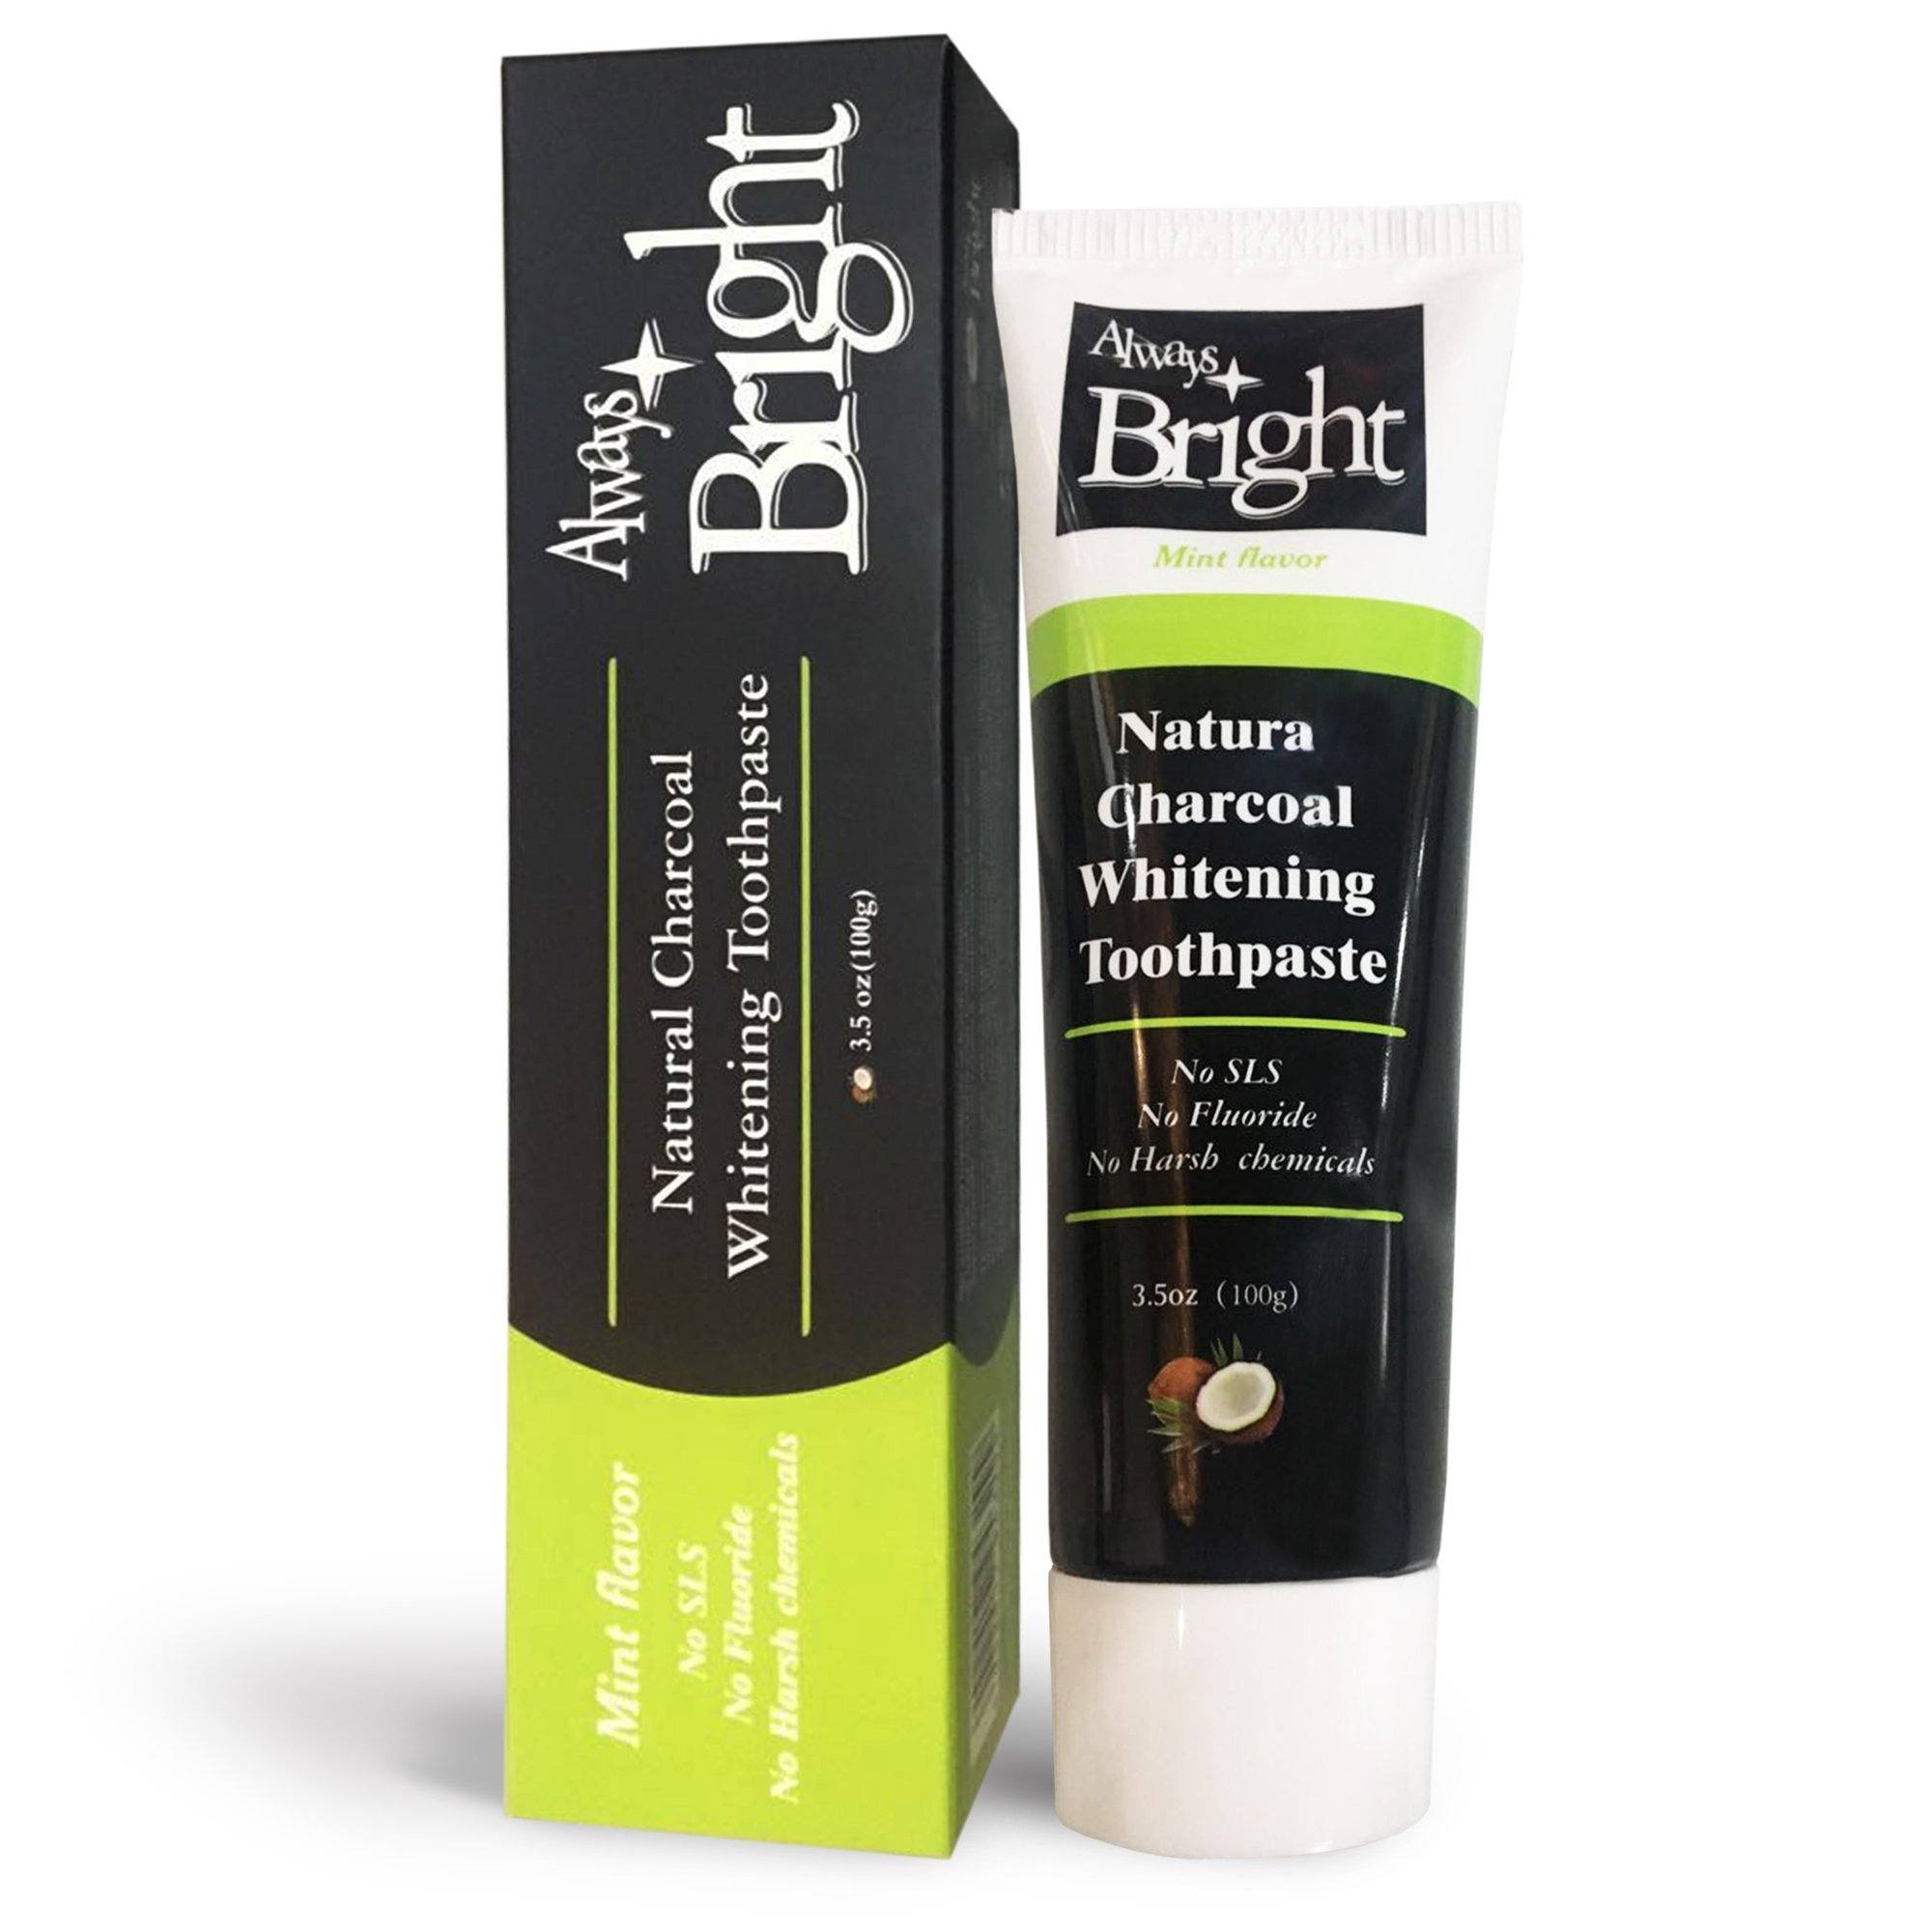 activated charcoal teeth whitening toothpaste 3d white natural organic bamboo. Black Bedroom Furniture Sets. Home Design Ideas